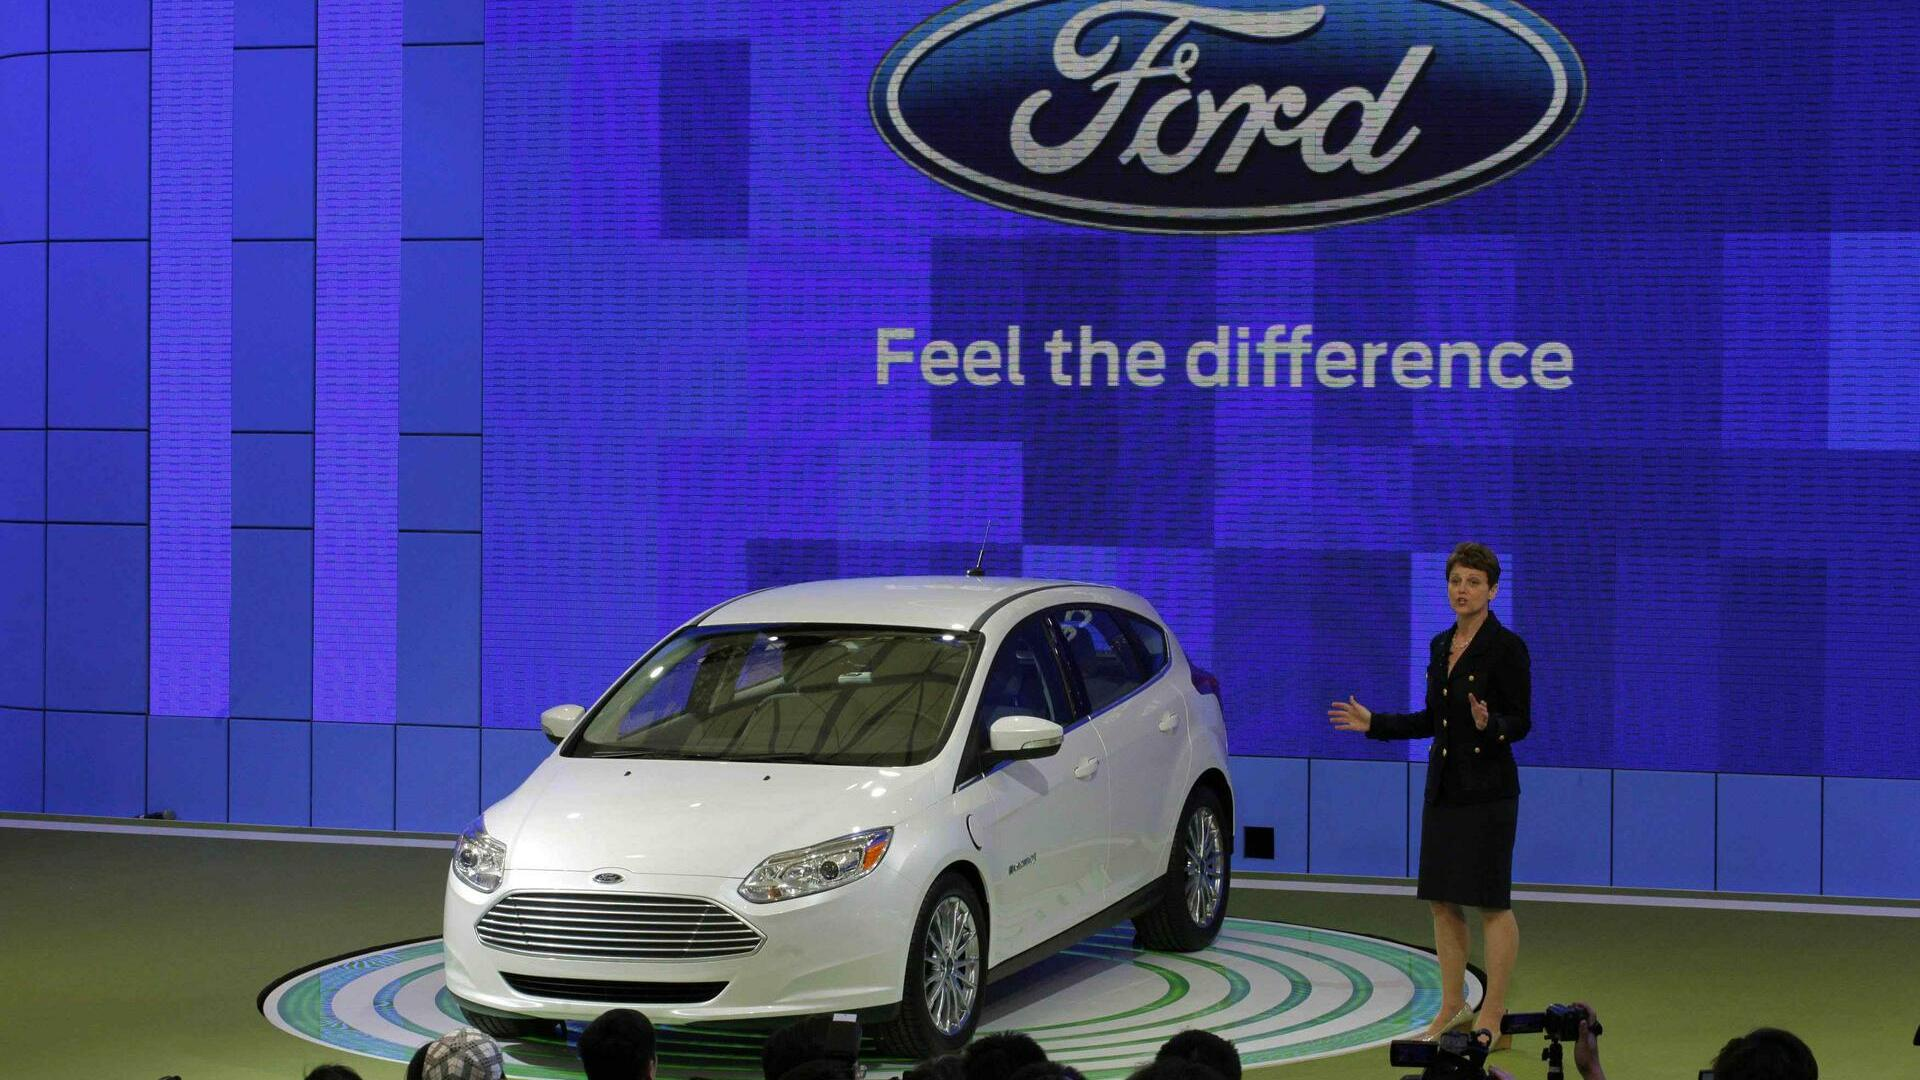 The new Ford Focus is displayed during the opening of the Shanghai Auto Show Quelle: REUTERS